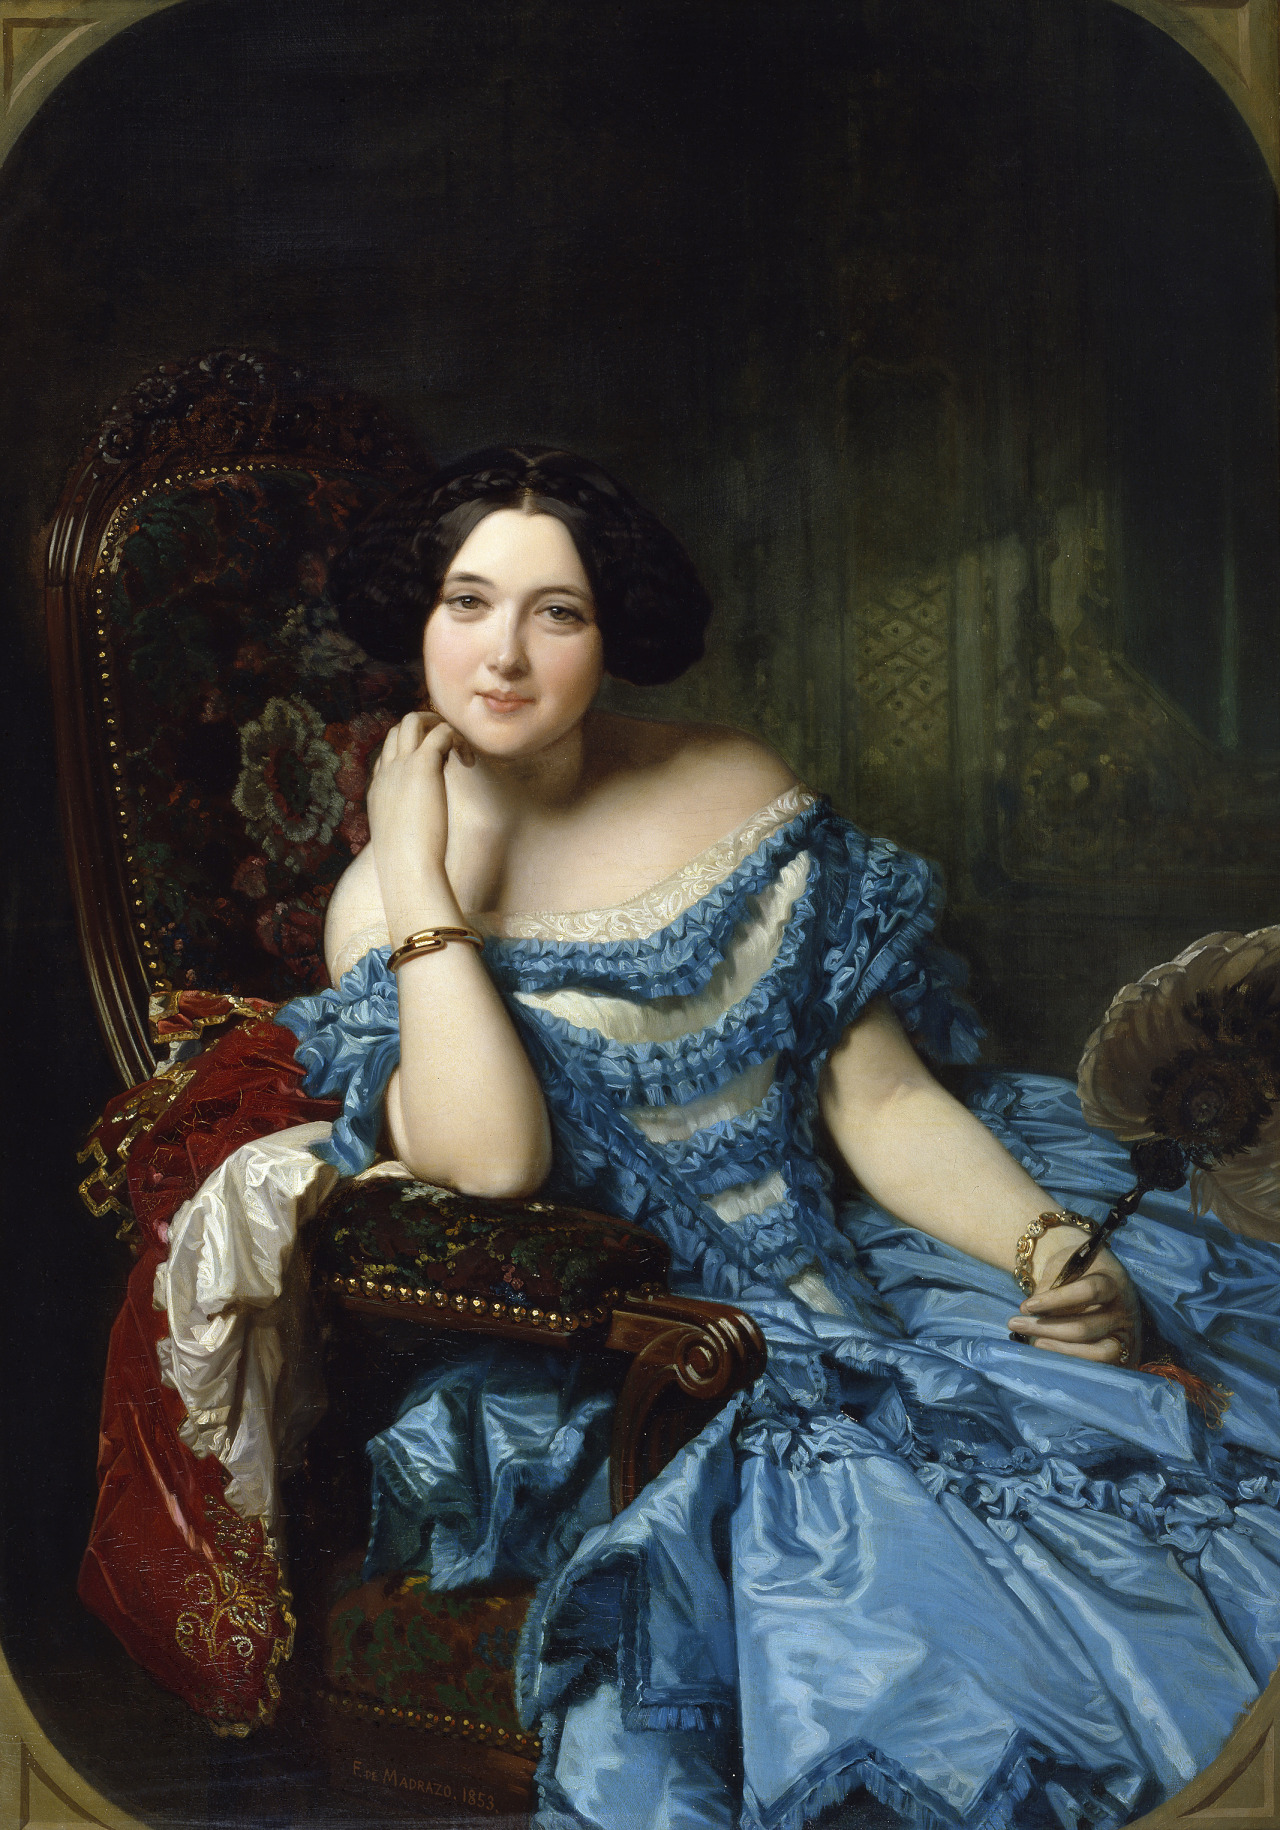 ld-blancol:  Countess of Vilches by Federico Madrazo (1853)